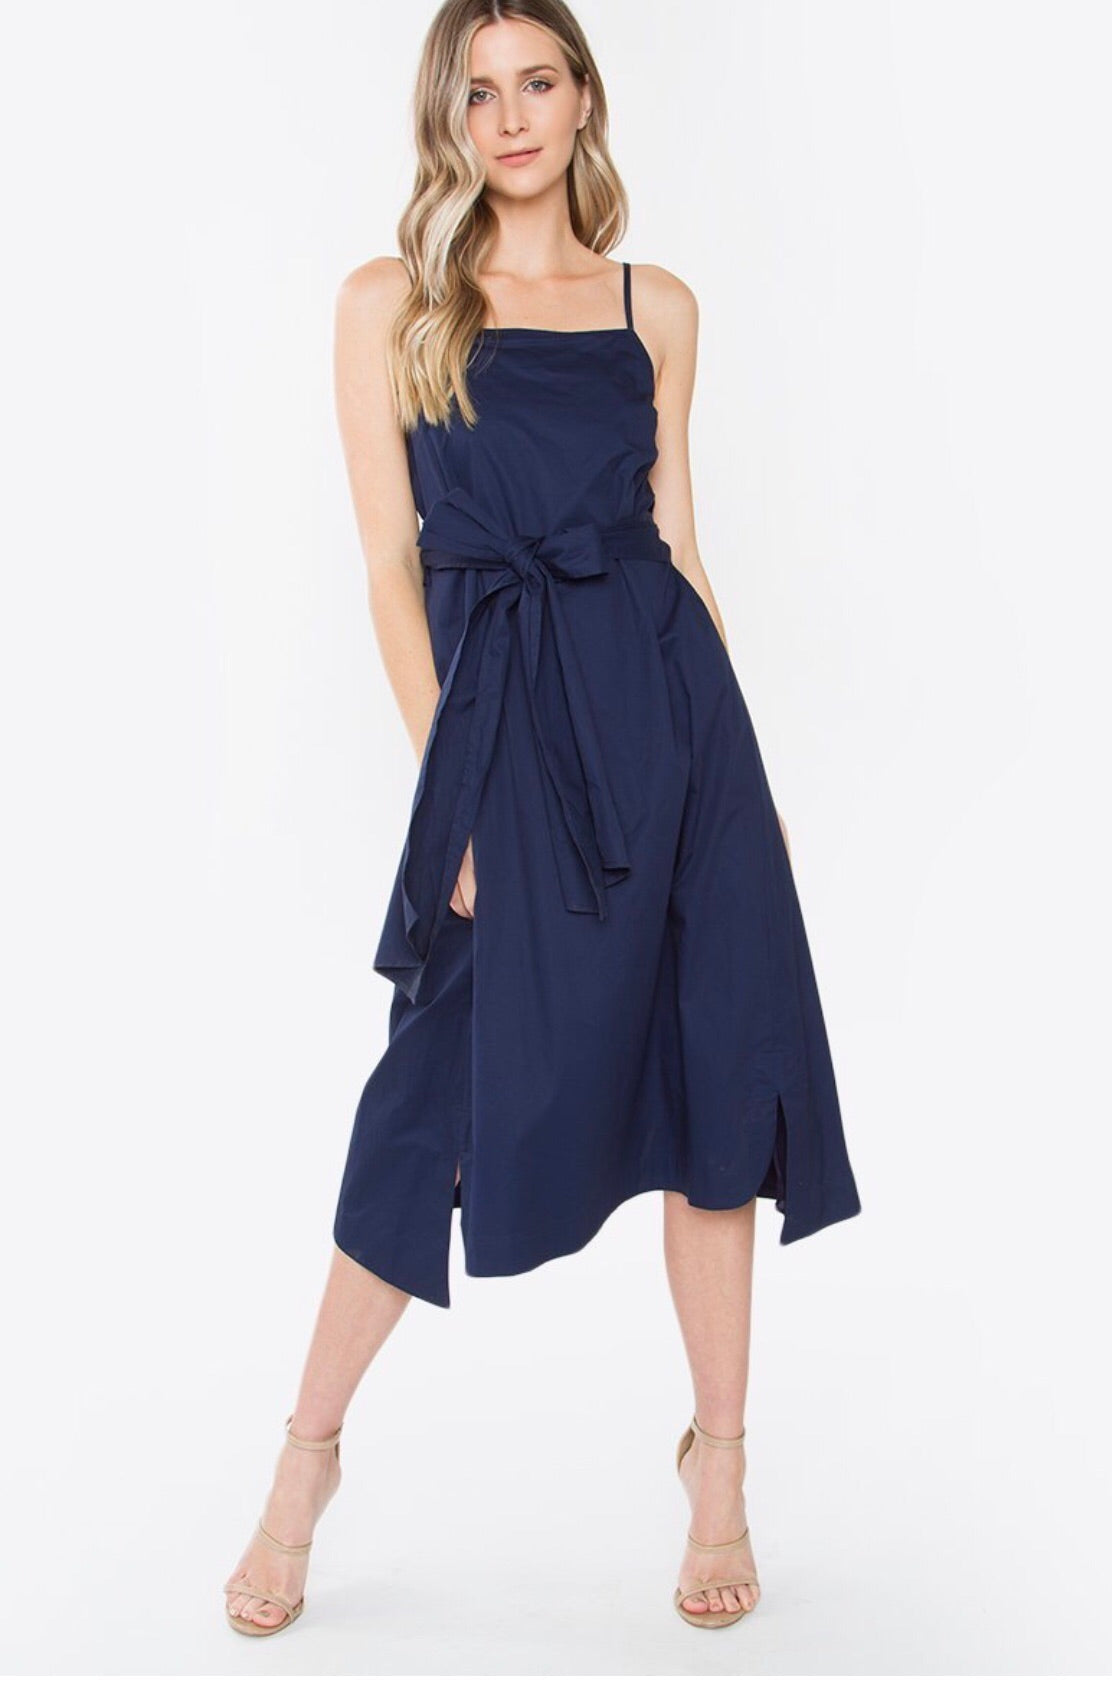 Hamptons Navy Midi Dress